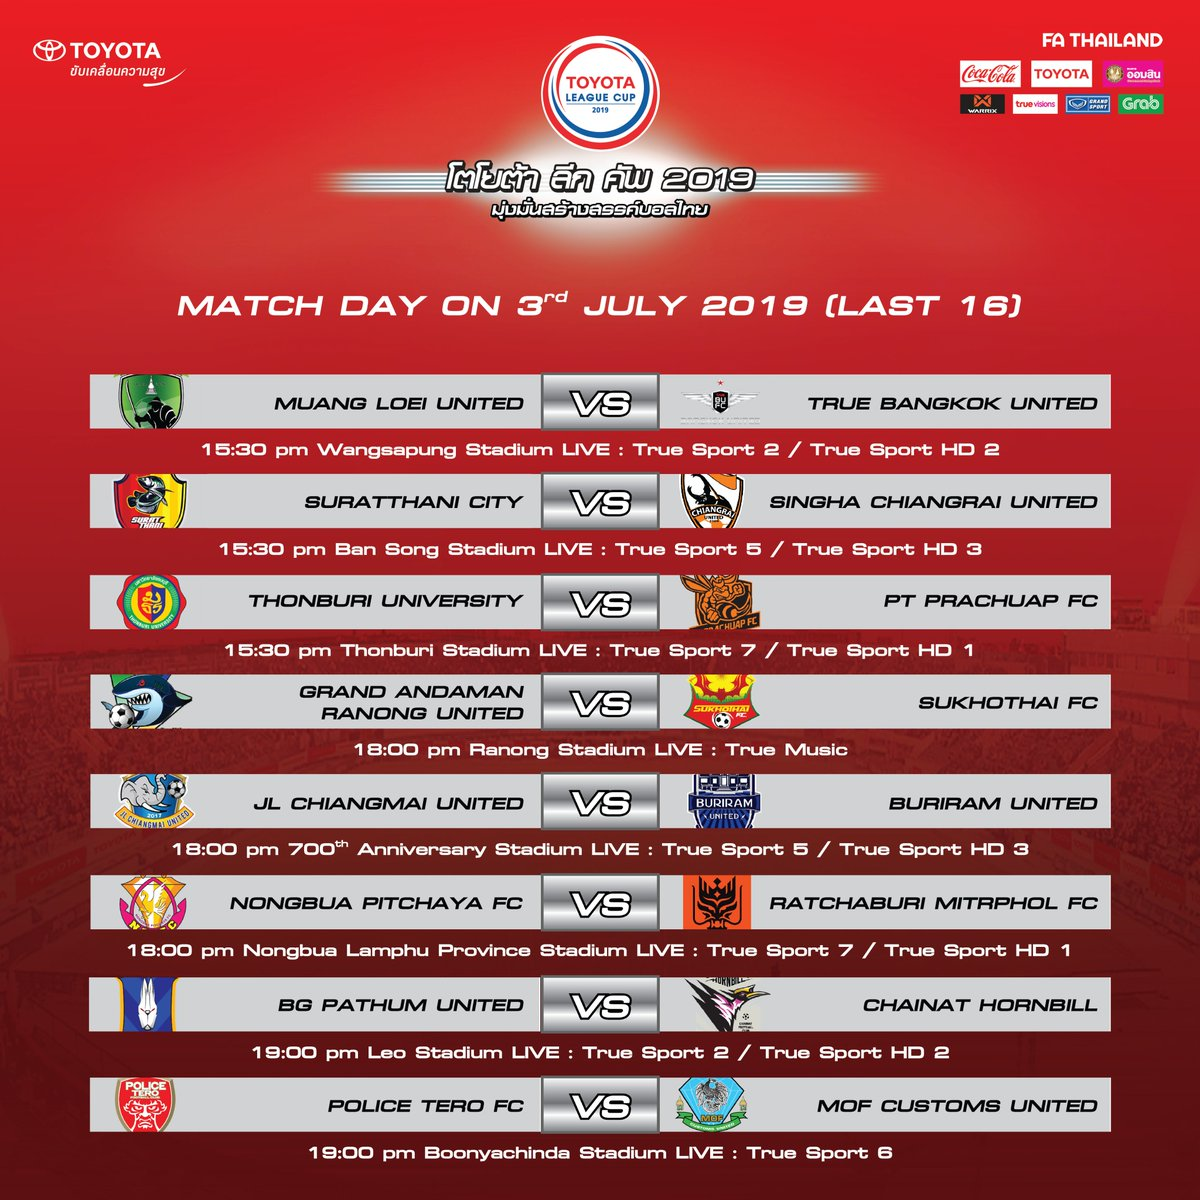 Check out the fixtures of your favorite team in the TOYOTA League